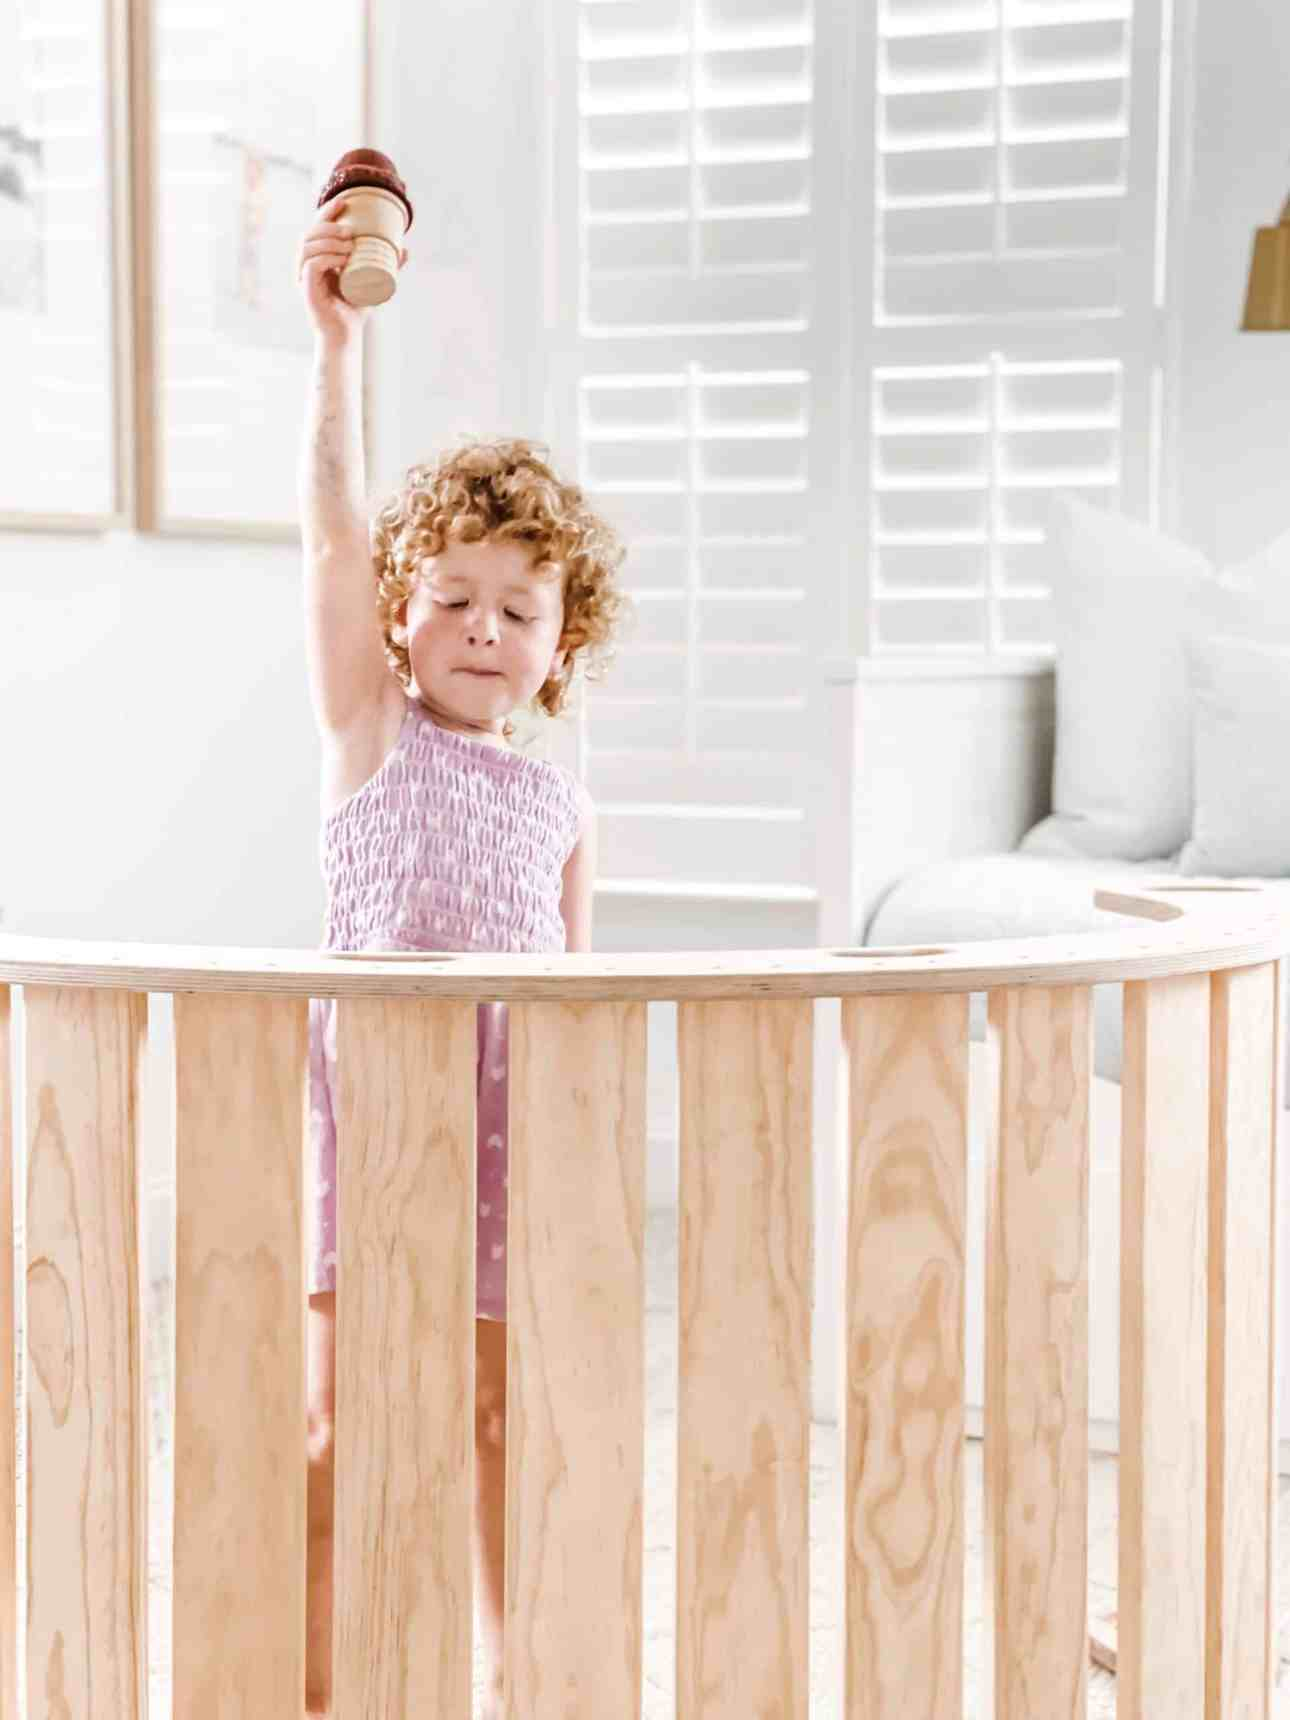 Imaginative play with wood toys.